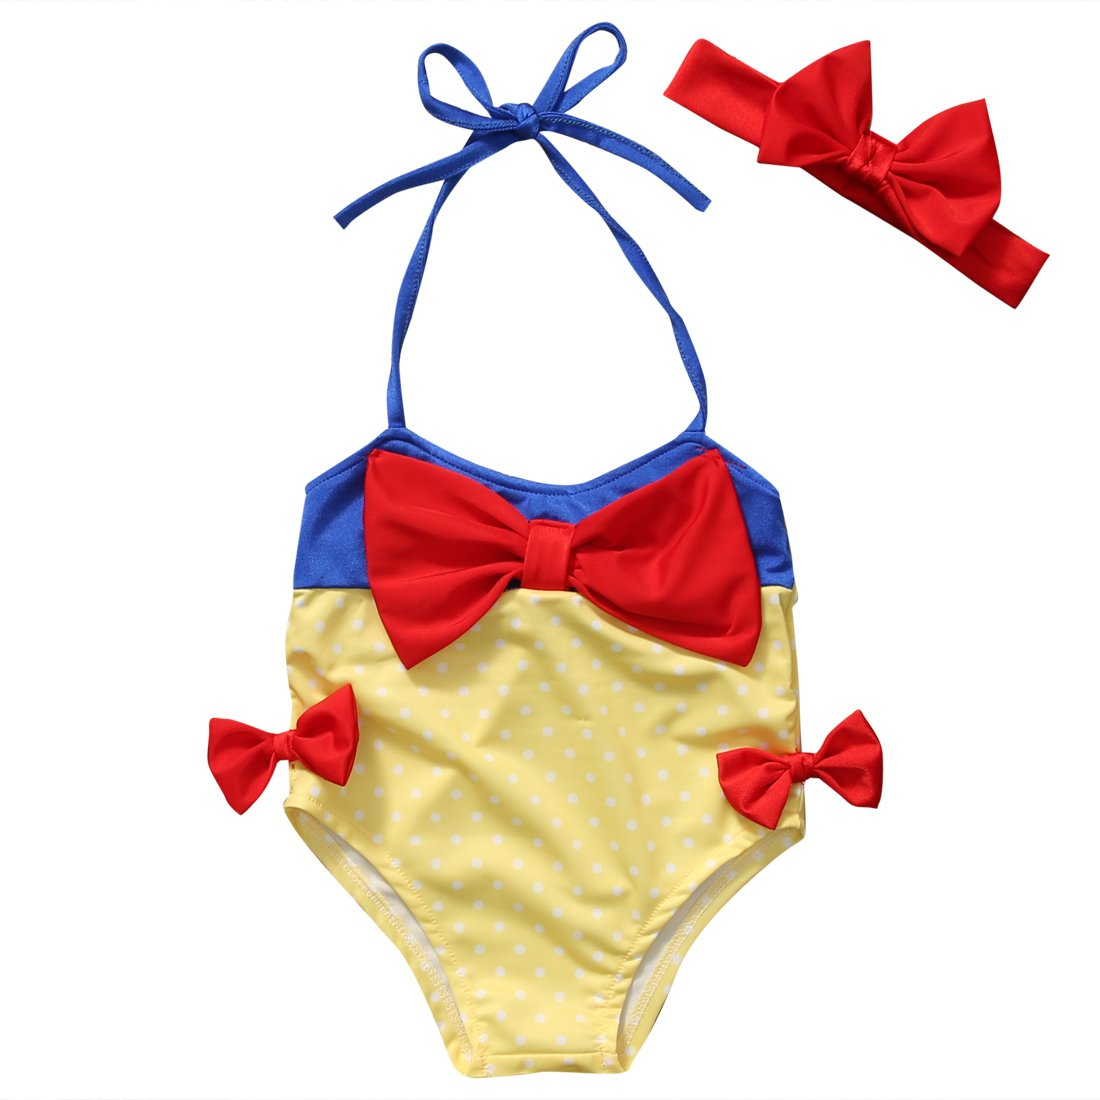 Hirigin Baby Girls 2 Pcs Swimwear Bow Dot Halter Romper Bikini+Headband Swimsuit FT16056